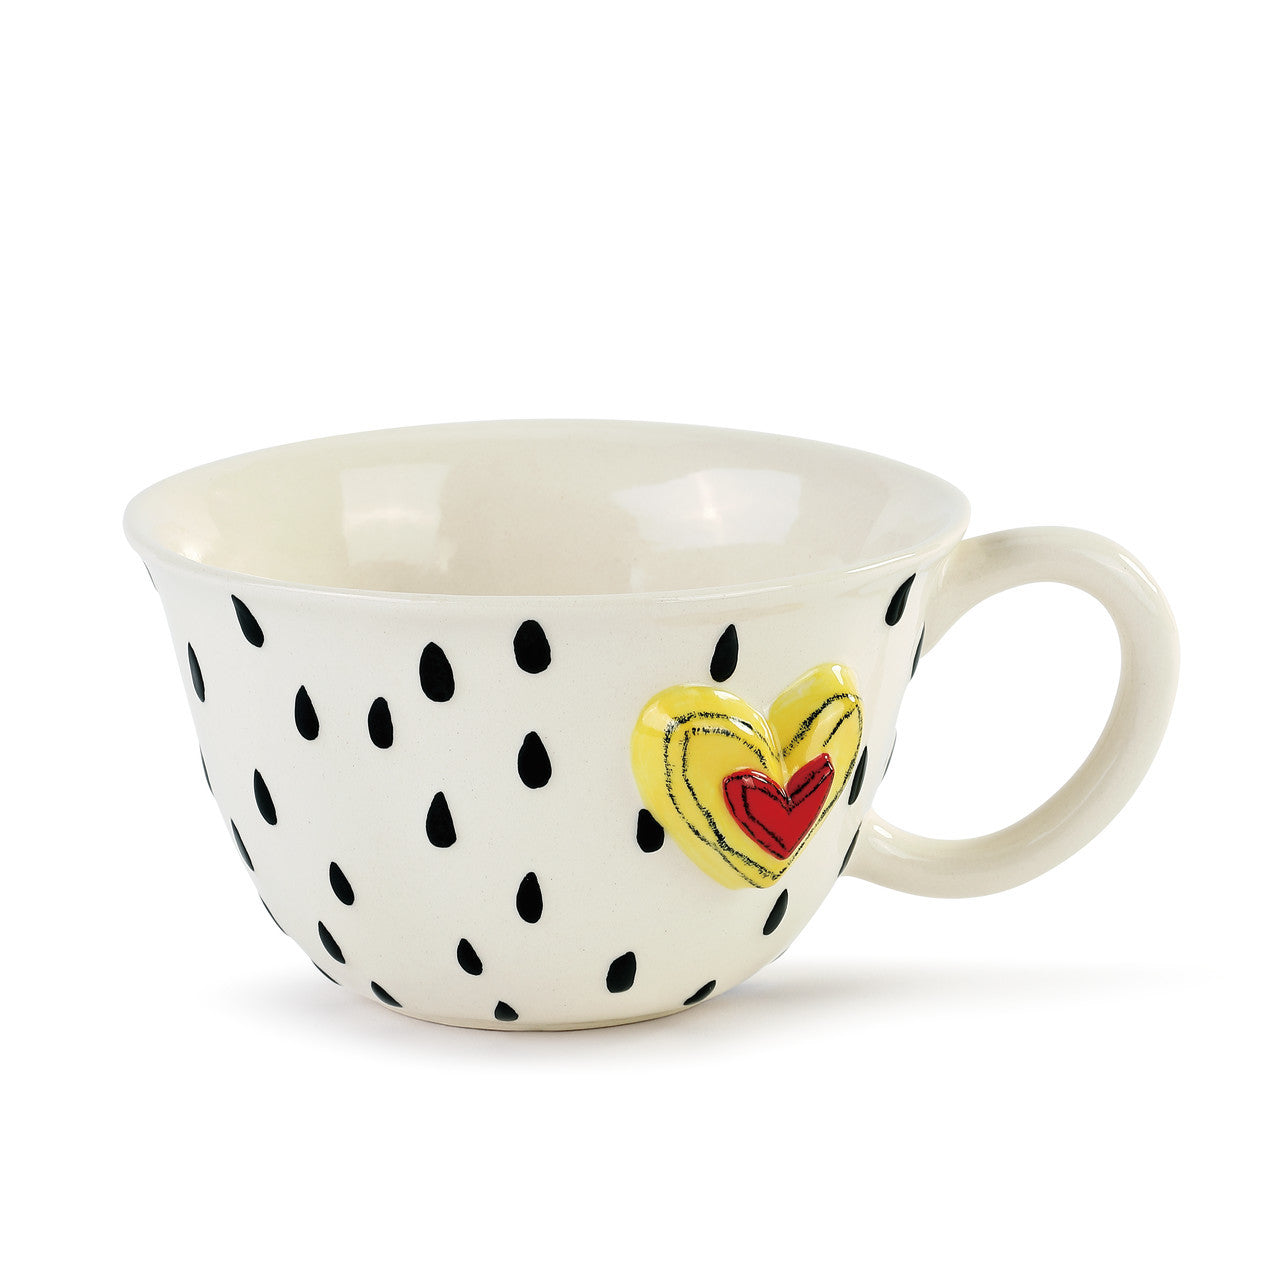 Raindrops and Hearts Tea Cup